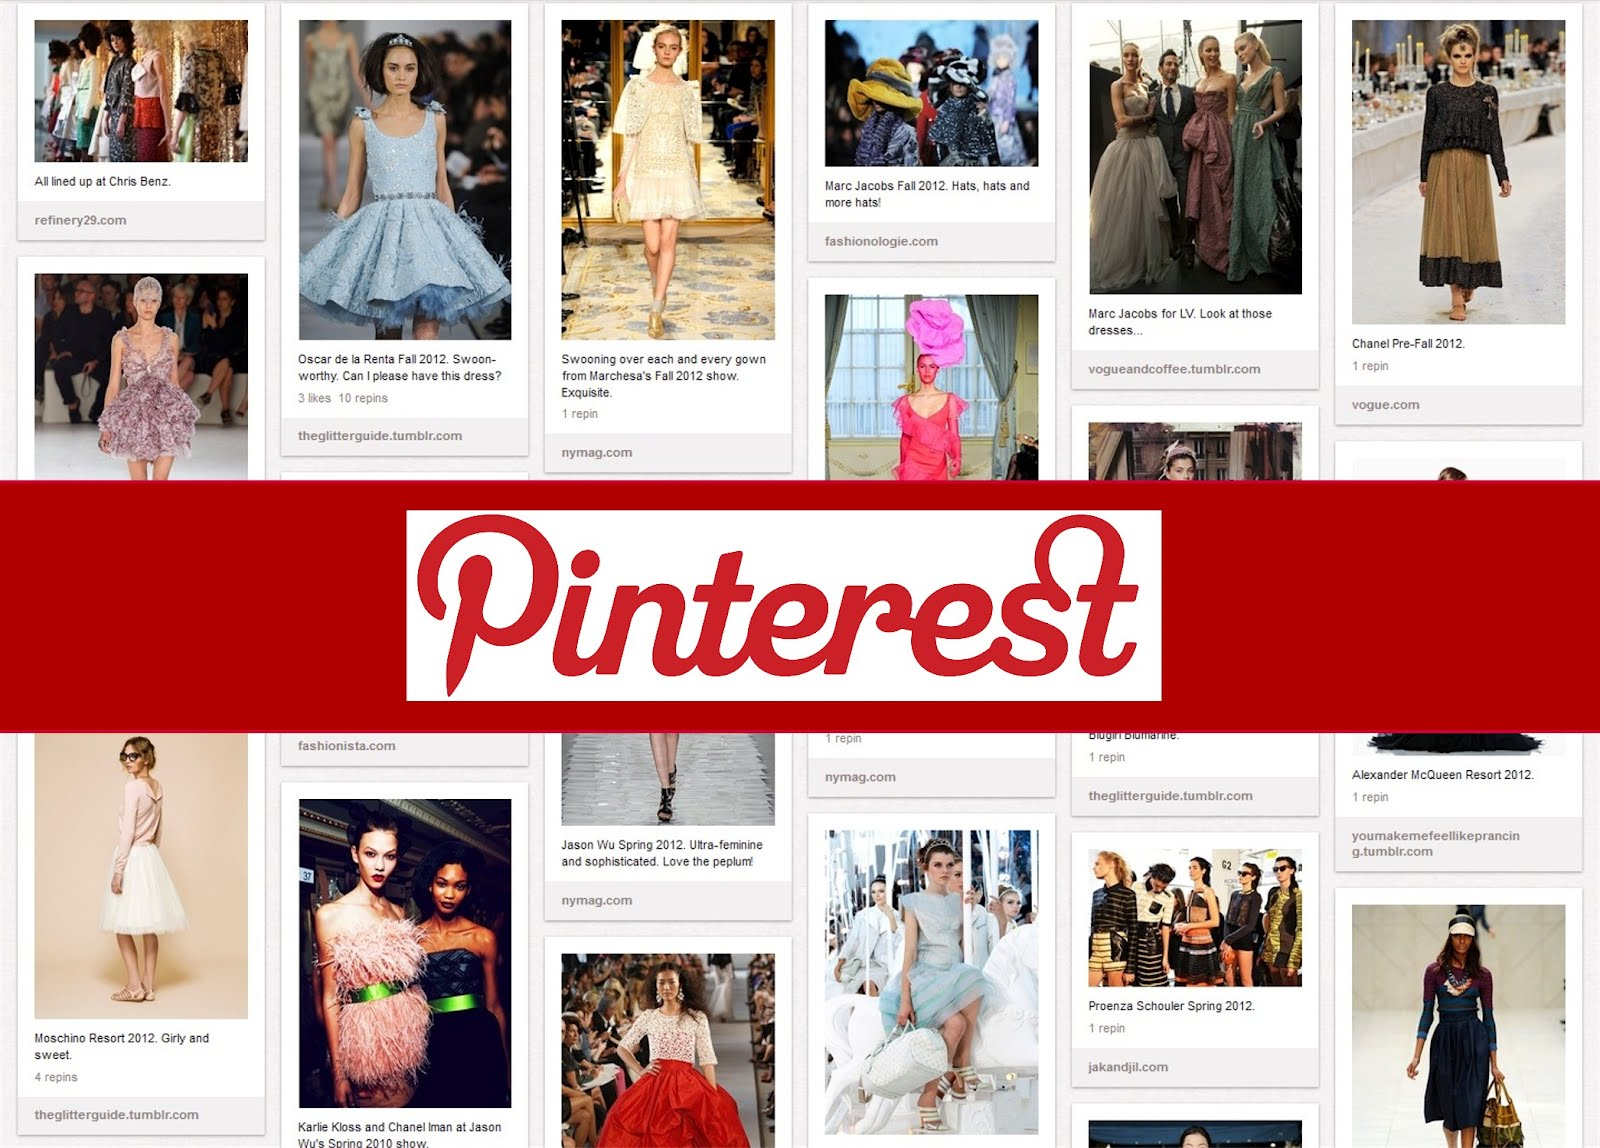 Pinterest Obsessed? Our 15 Favorite Pinning Pro's (fashion, style, and trends!)